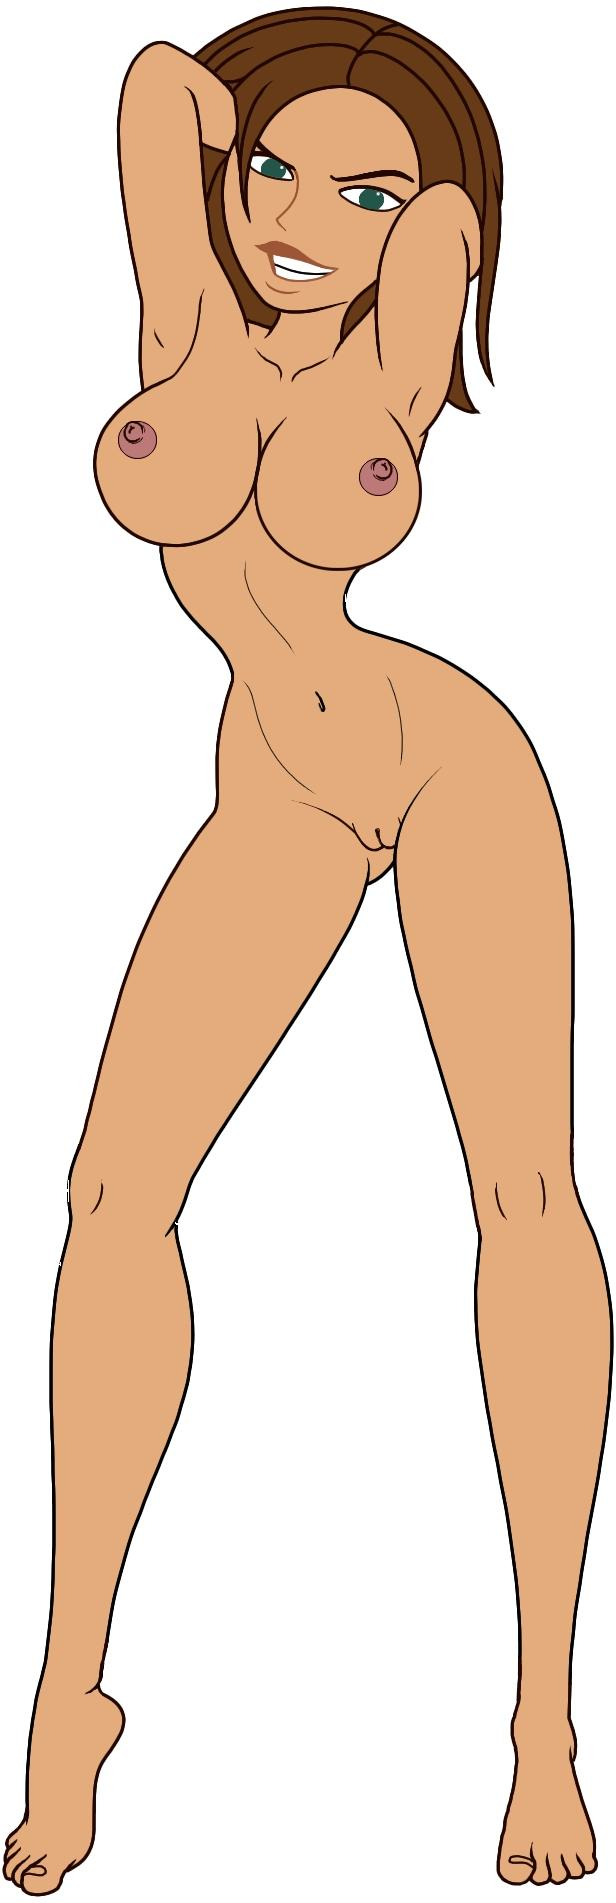 Big tits kim possible naked, little fucked slowly sex